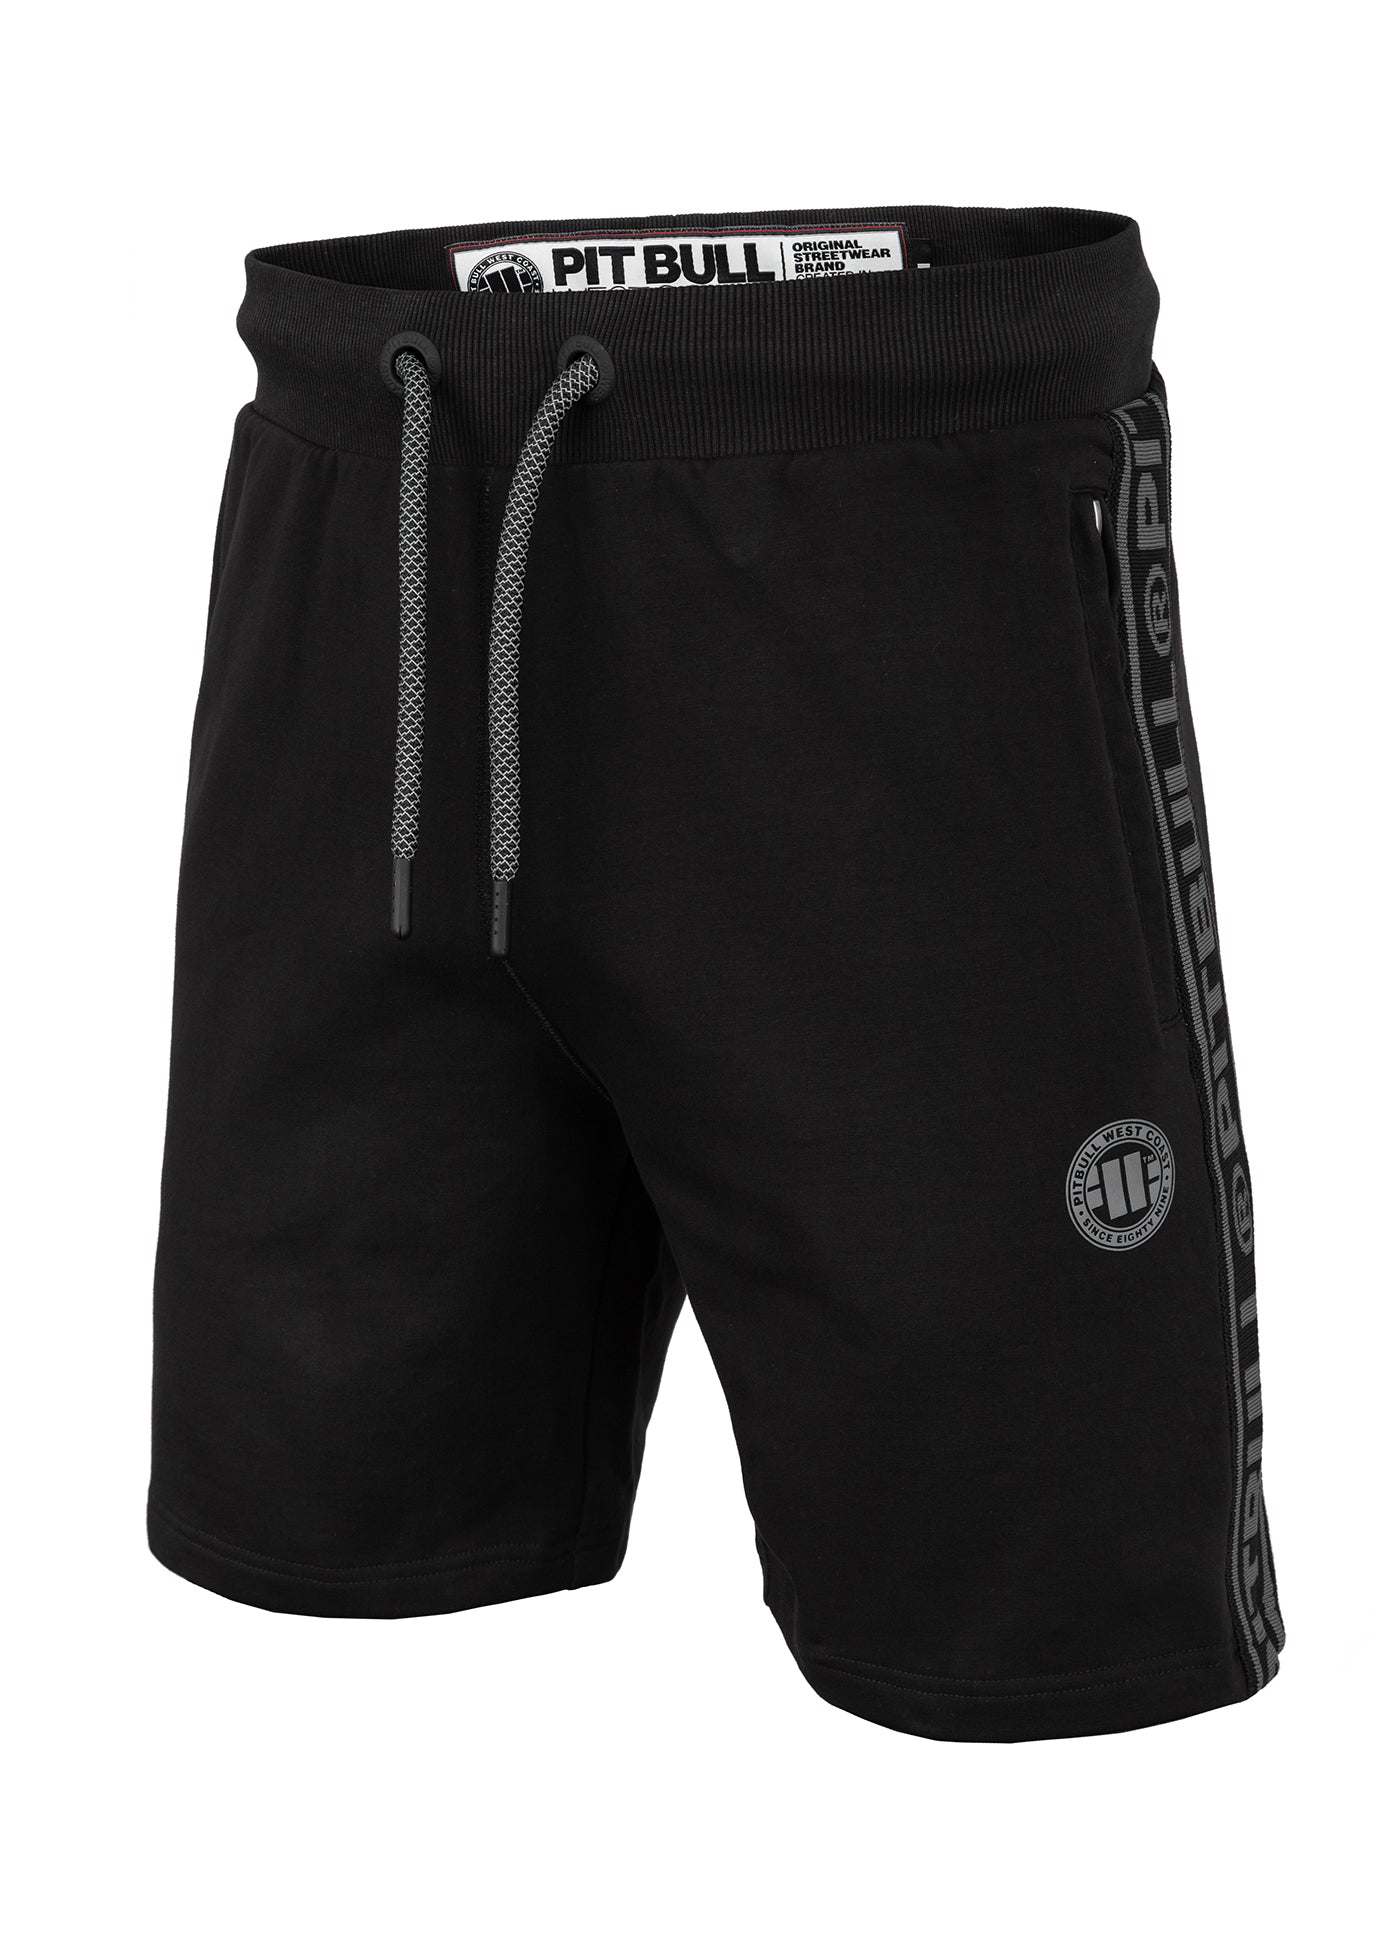 Shorts 'Small Logo' FRENCH TERRY Black - pitbullwestcoast